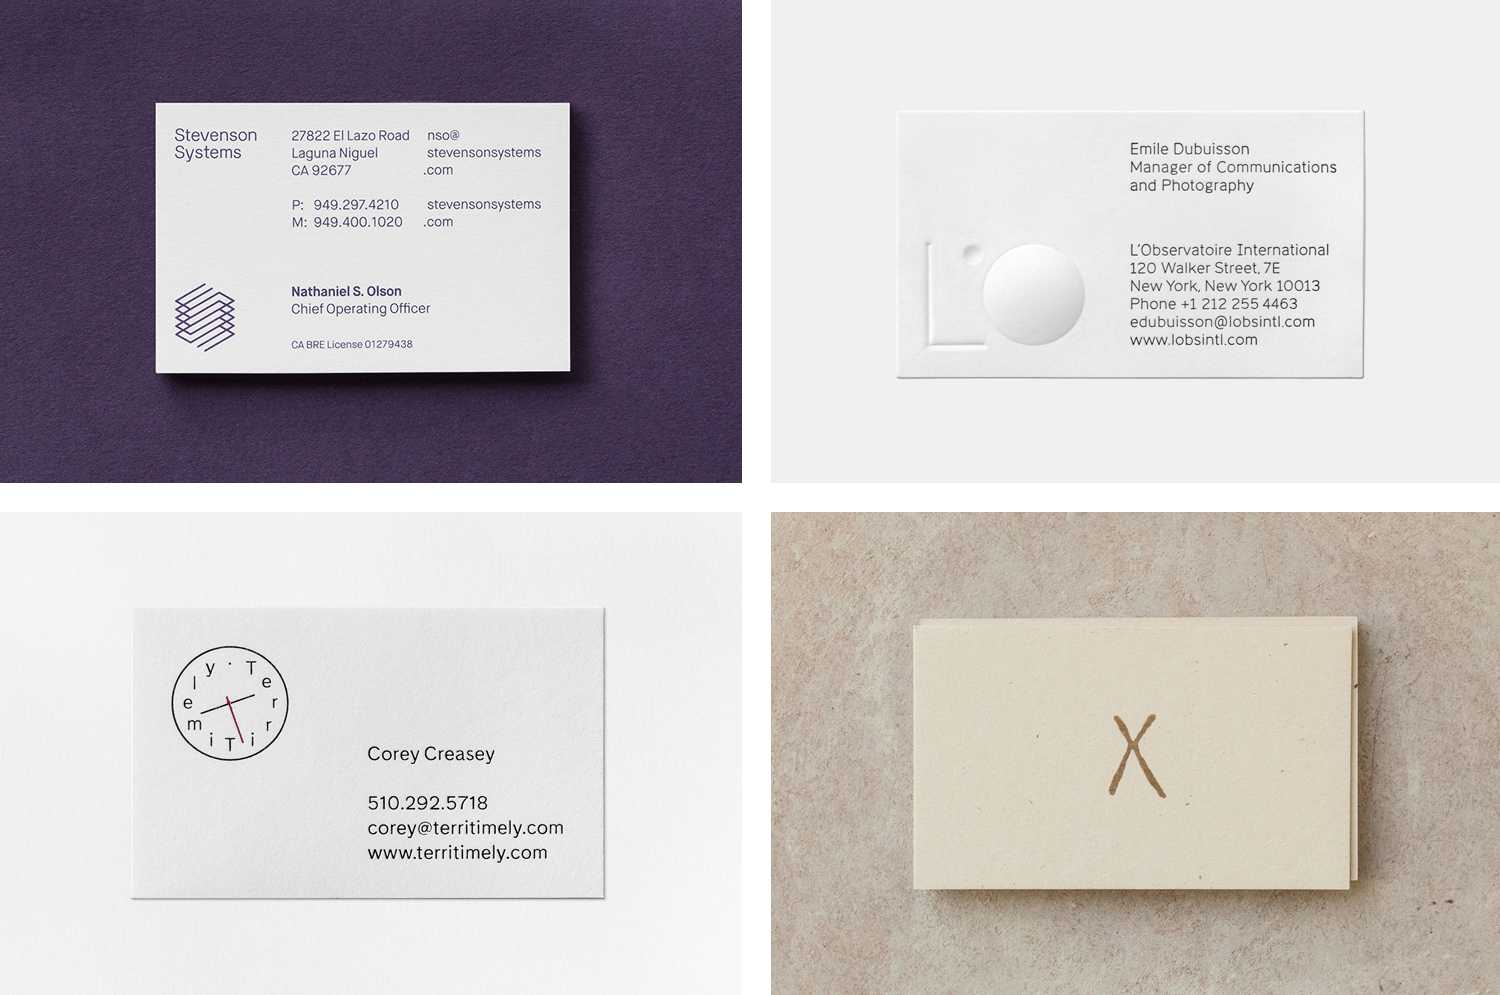 The Best Business Cards of 2016